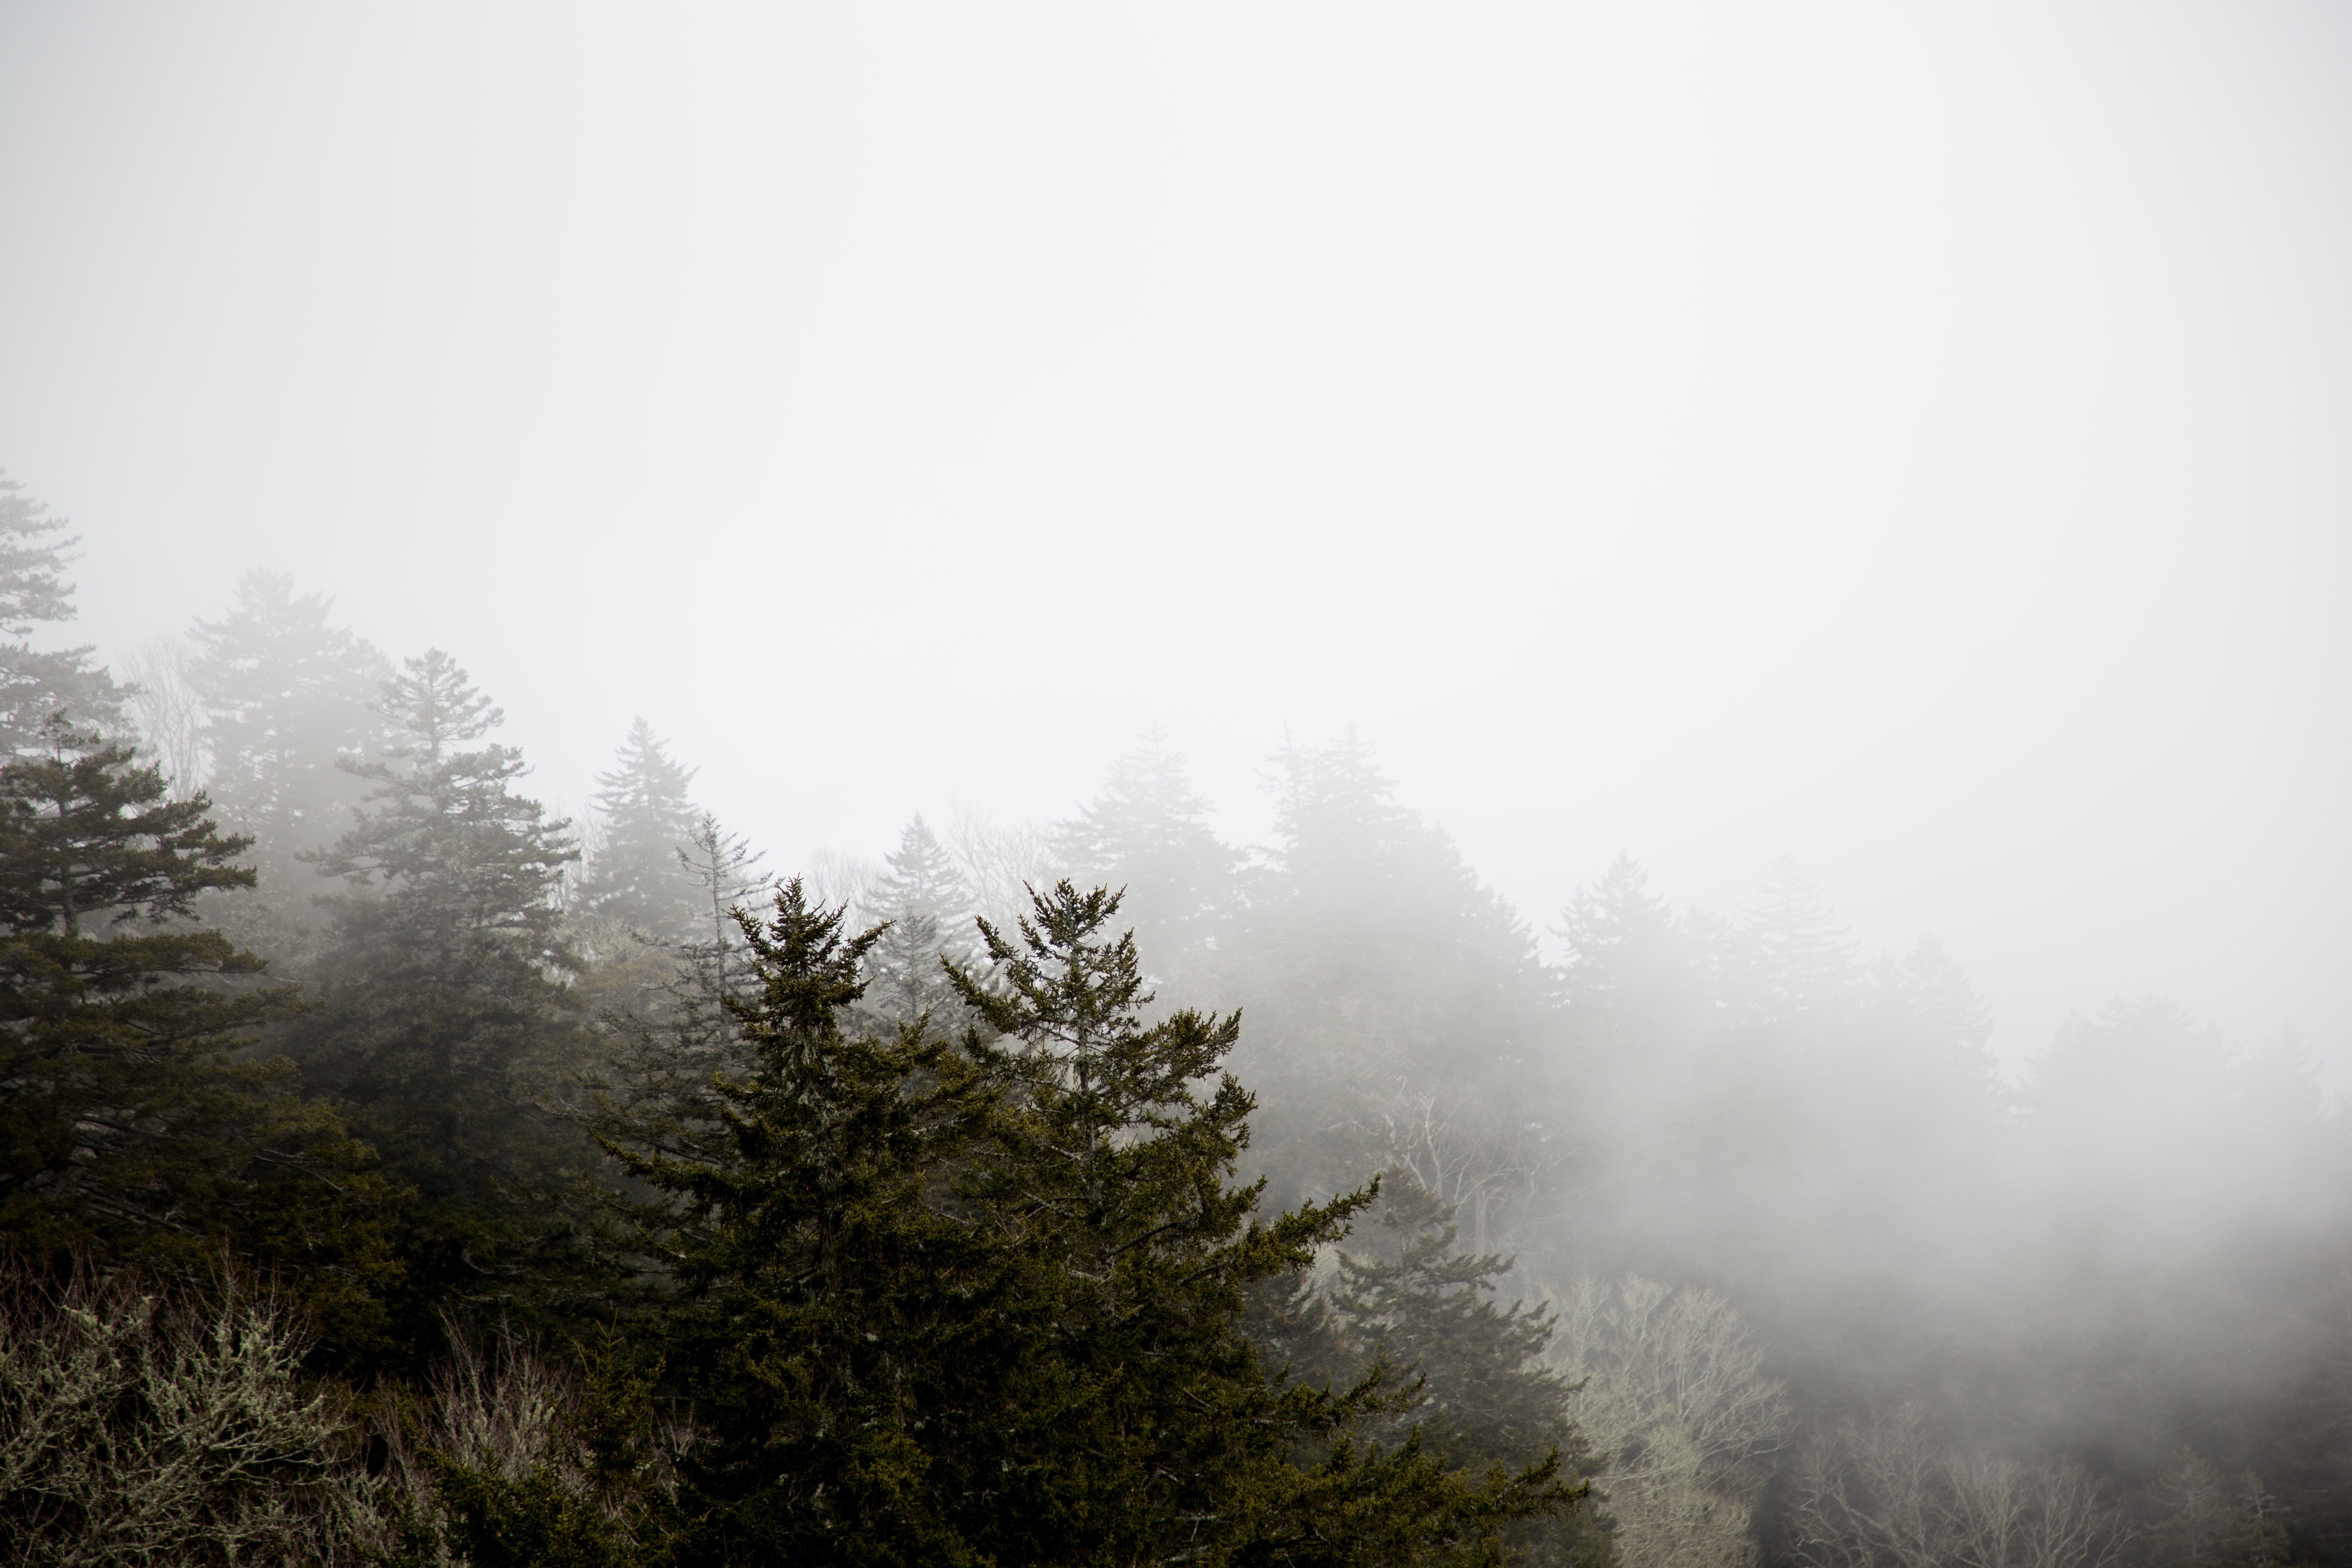 green trees covering fog during daytime